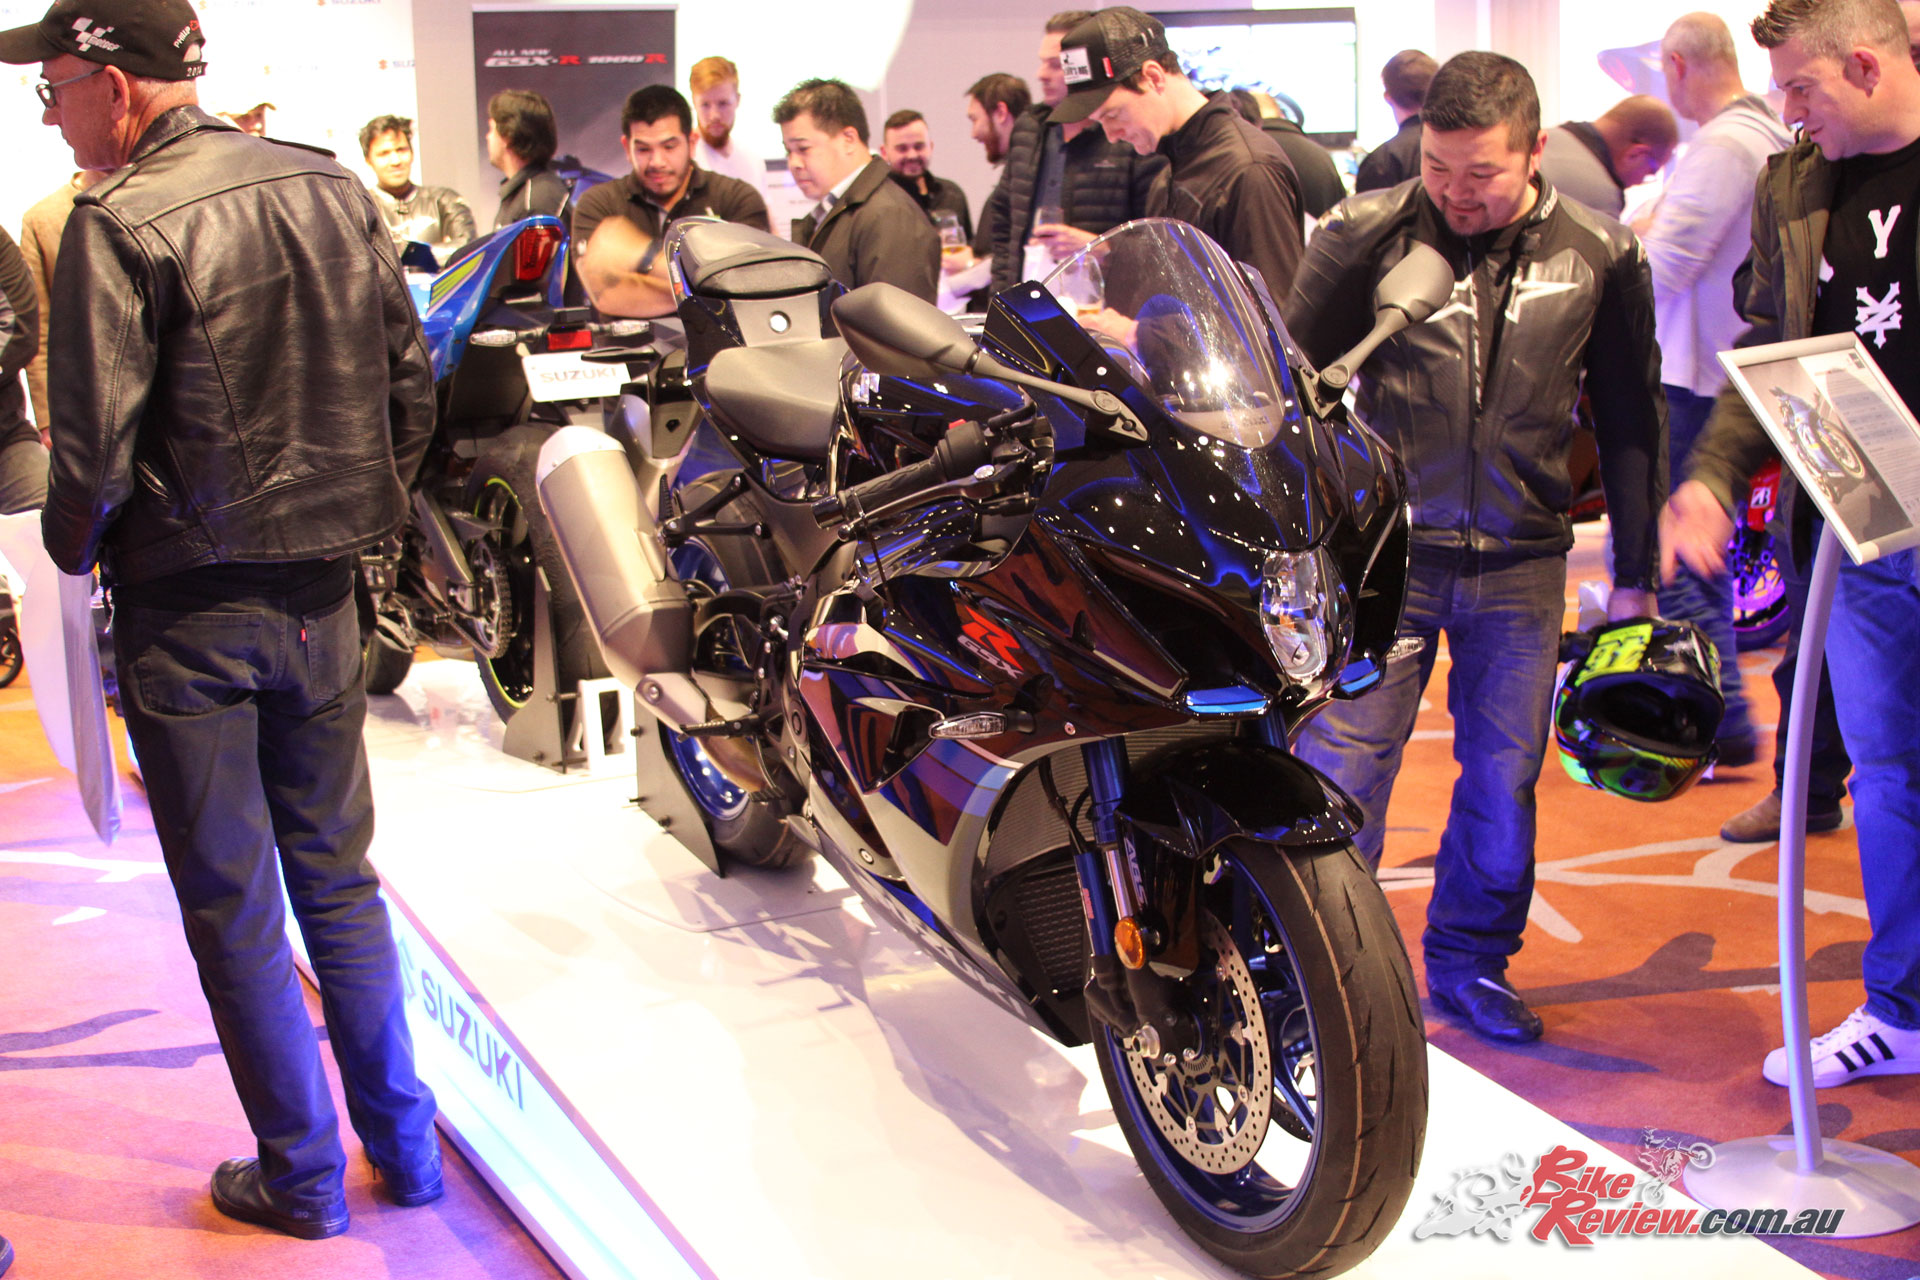 Suzuki's not yet available GSX-R1000Rs took pride of place and will be available later in the year